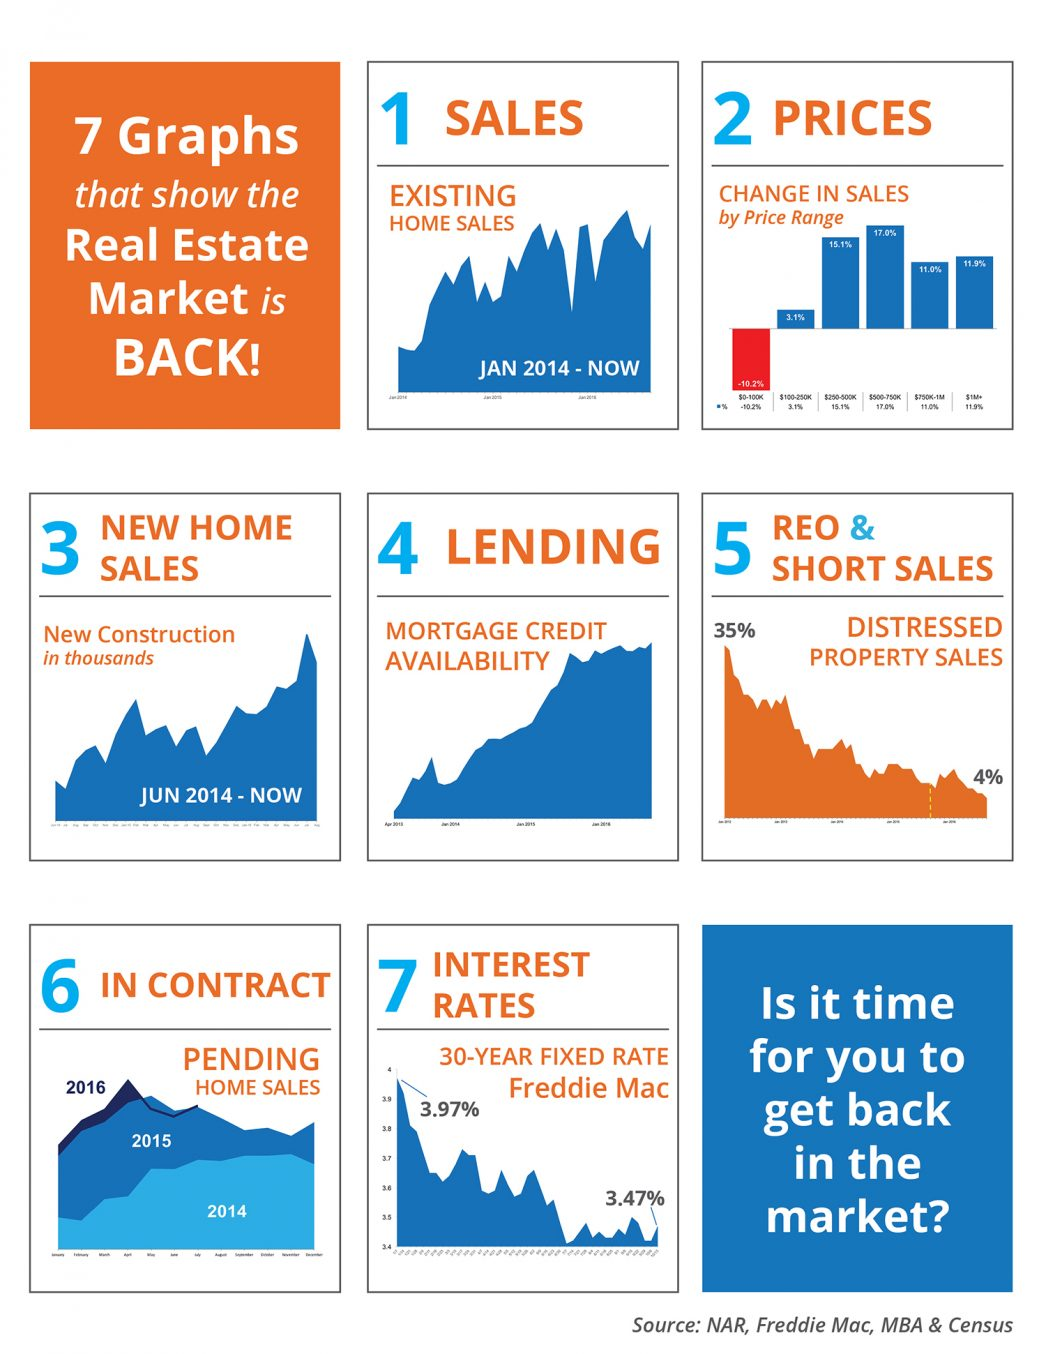 7 Graphs That Show the Real Estate Market is Back! [INFOGRAPHIC] | MyKCM